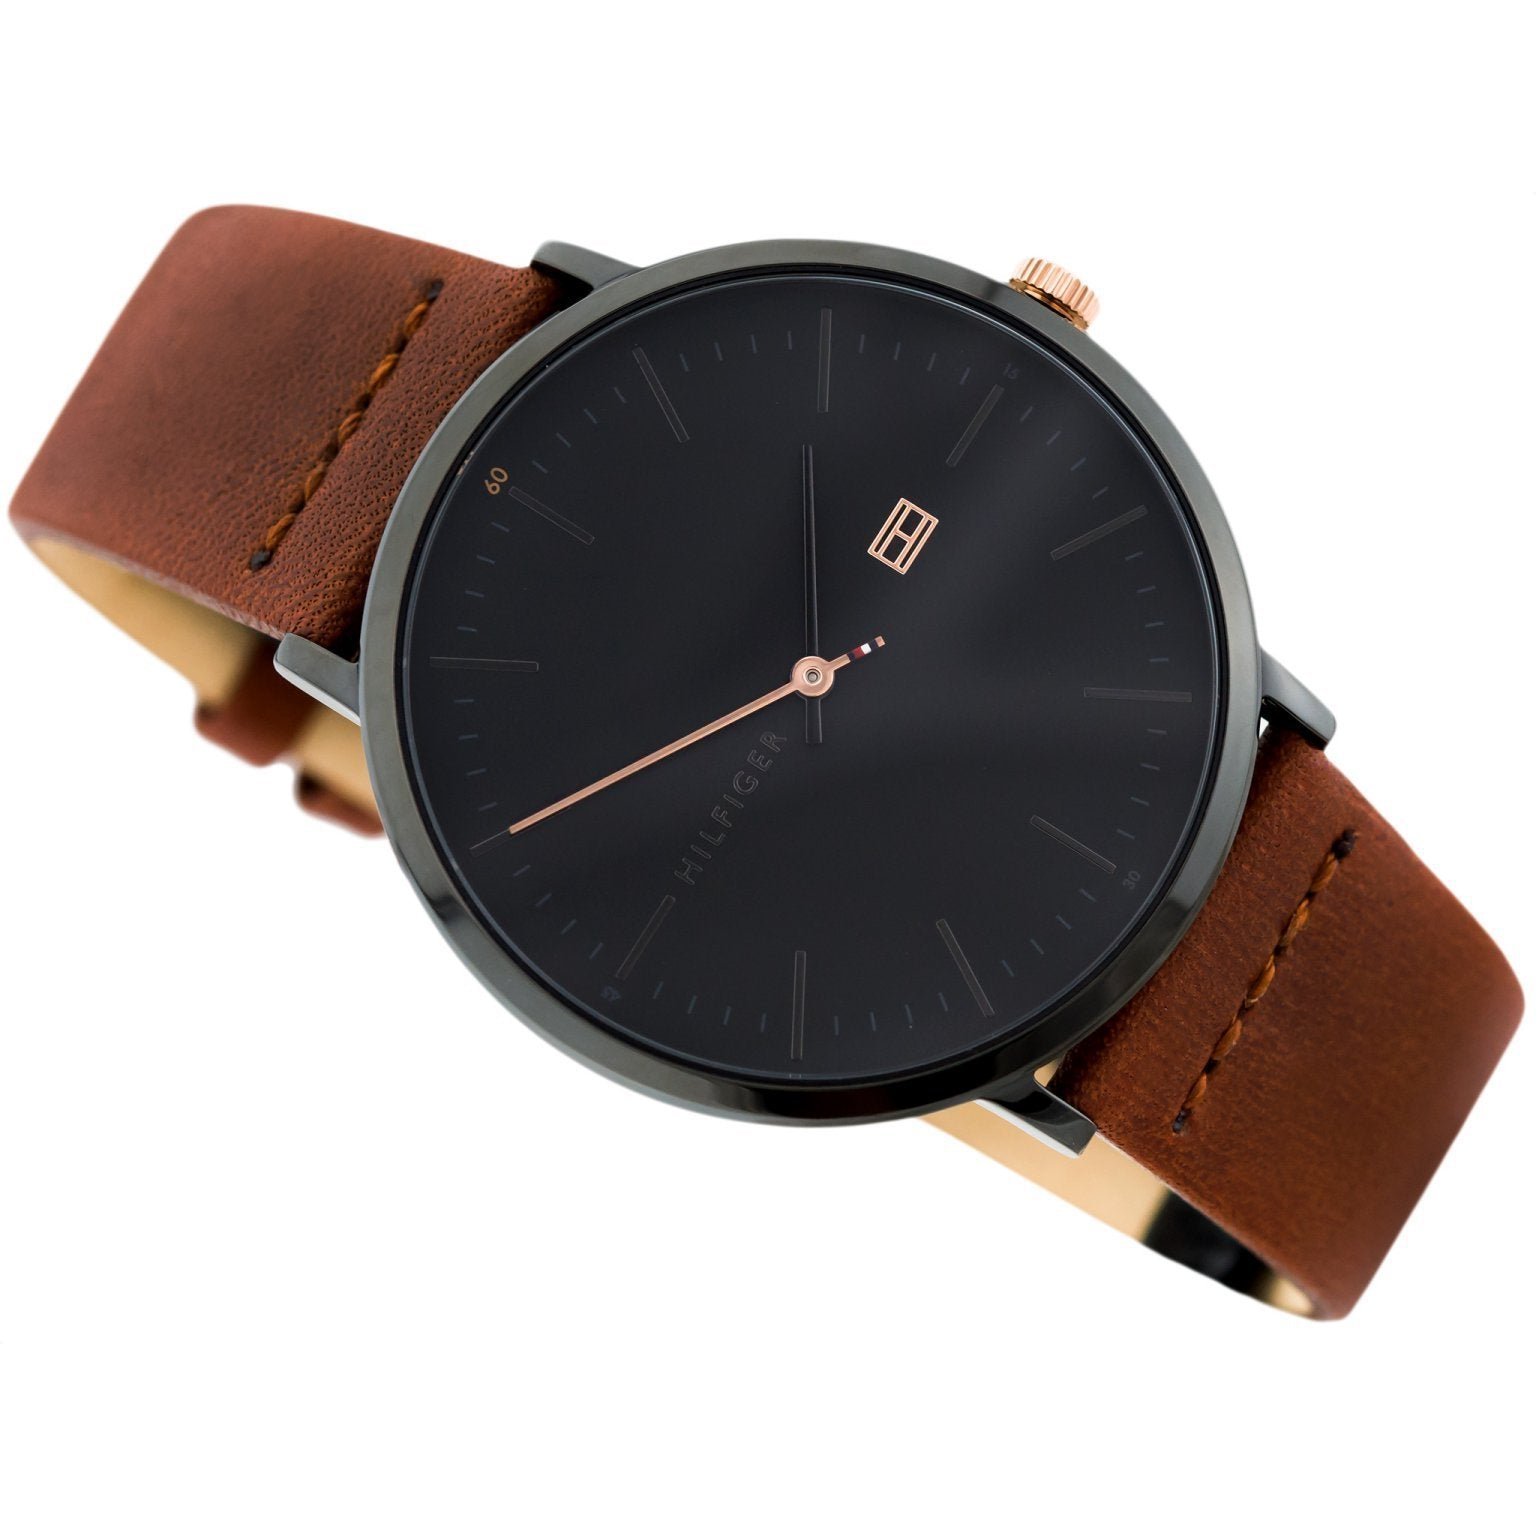 019b75e1 Tommy Hilfiger Men's Brown Leather Watch - 1791461 – The Watch ...